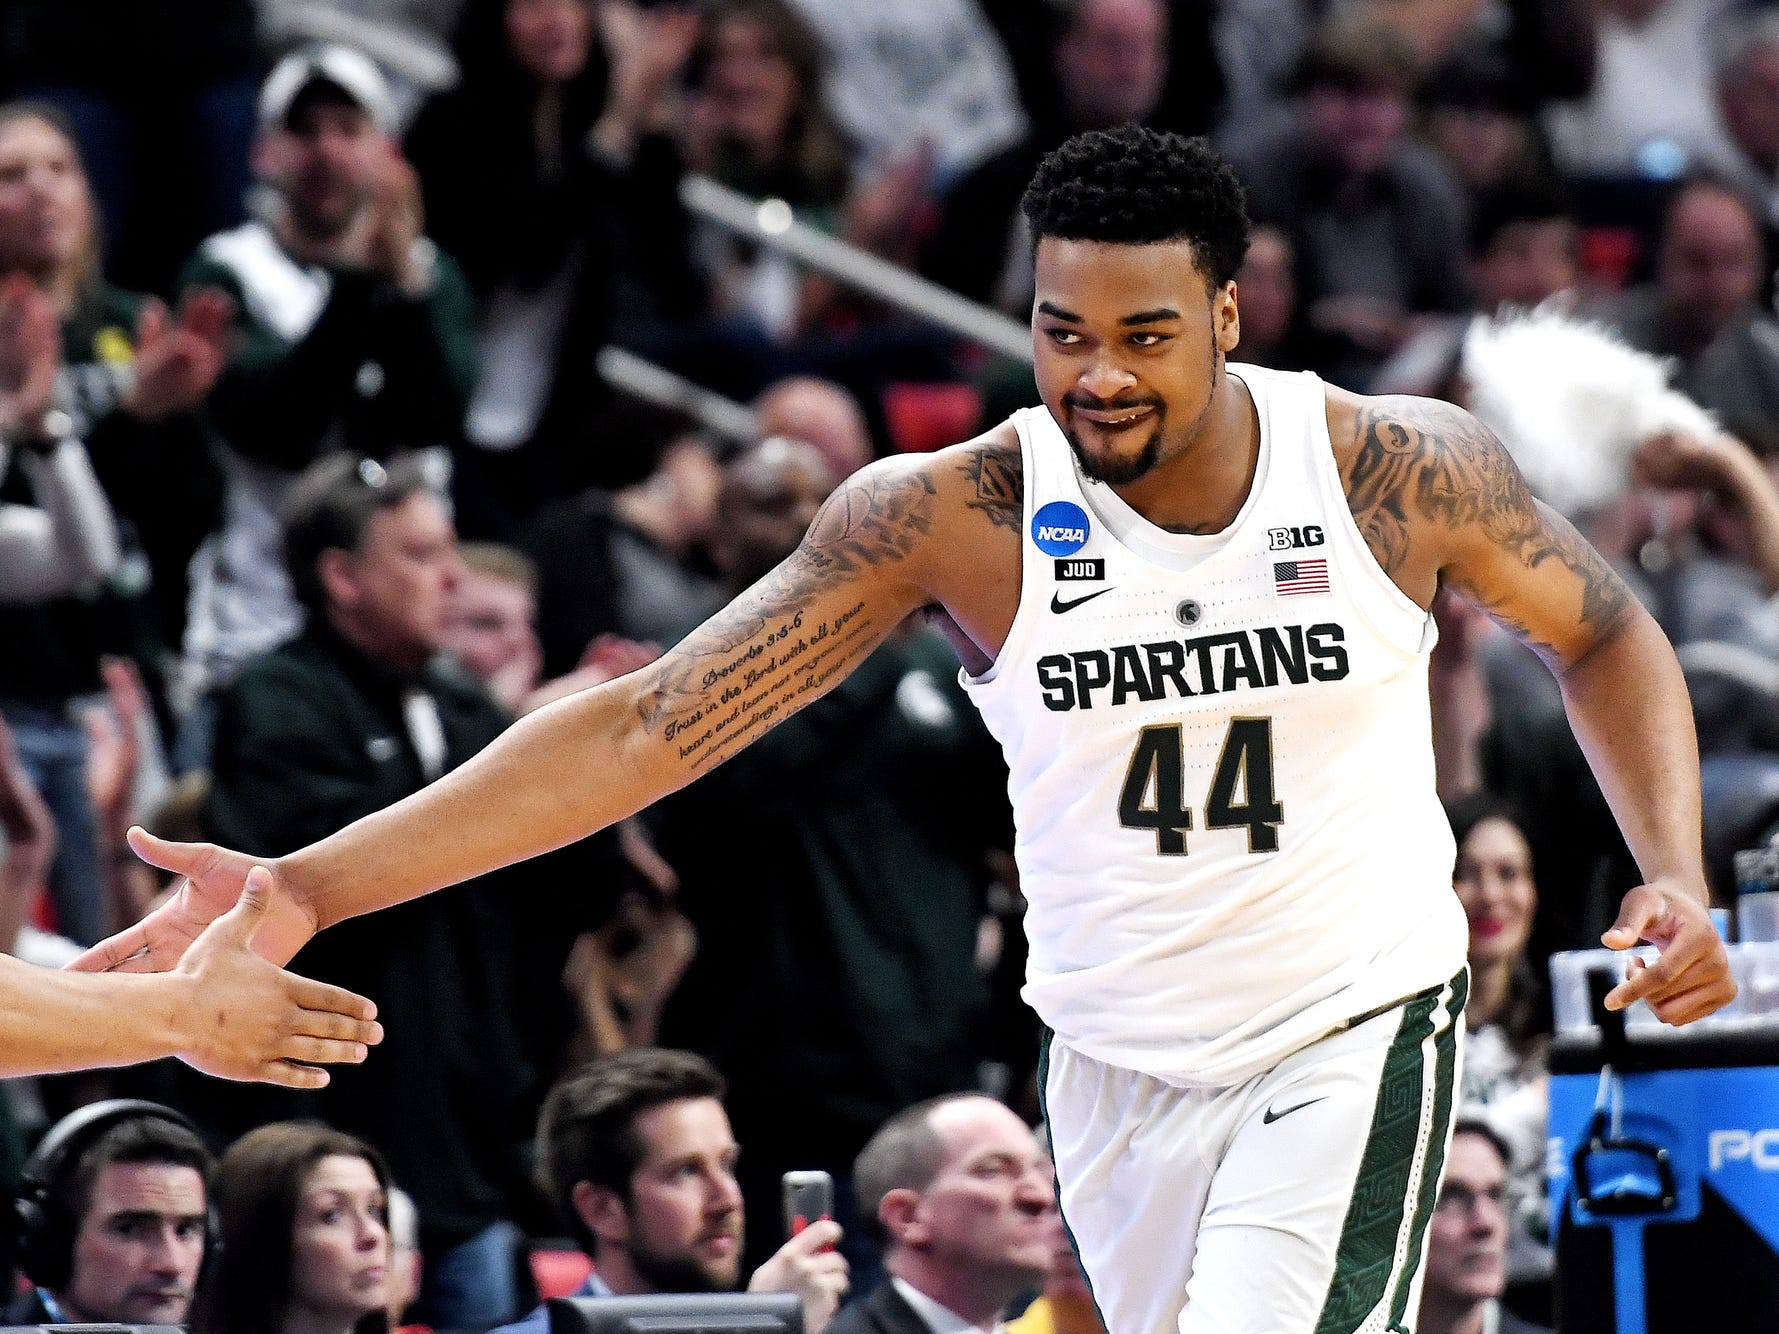 Michigan State's Nick Ward celebrates after his dunk during the first half on Sunday, March 18, 2018, at the Little Caesars Arena in Detroit.